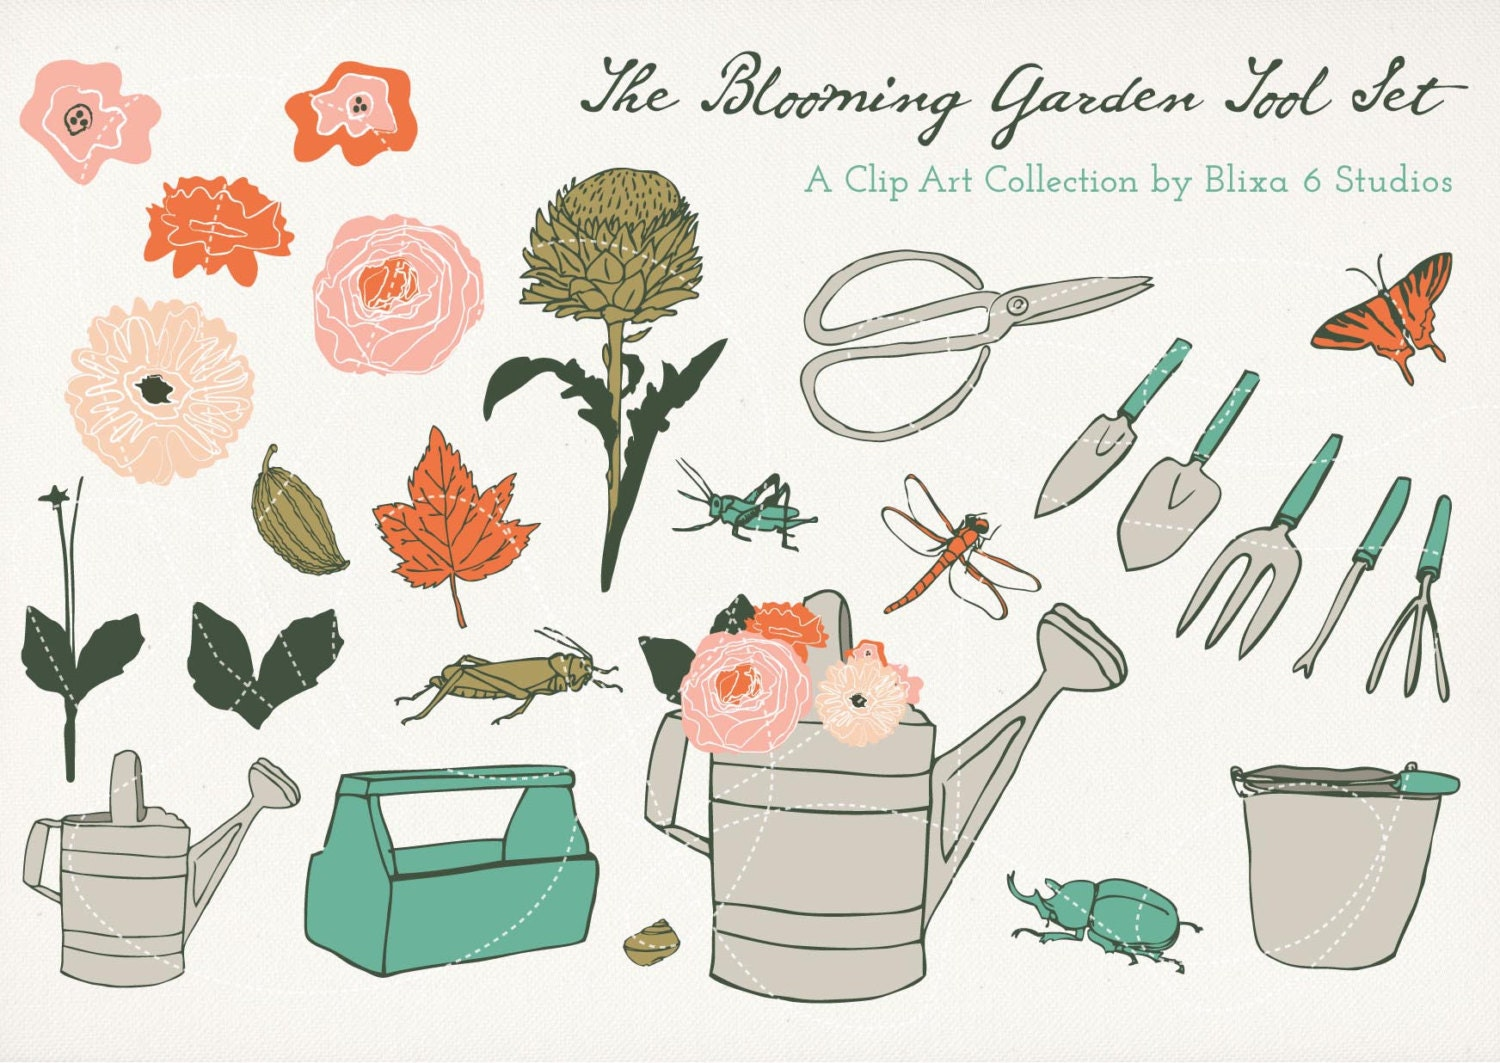 Blooming Garden Digital Clip Art Drawing Set Of 26 Hand Illustrated Bugs,  Flowers And Tool Graphics For Crafts, Scrapbooks, U0026 Collages From  Blixa6Studios On ...